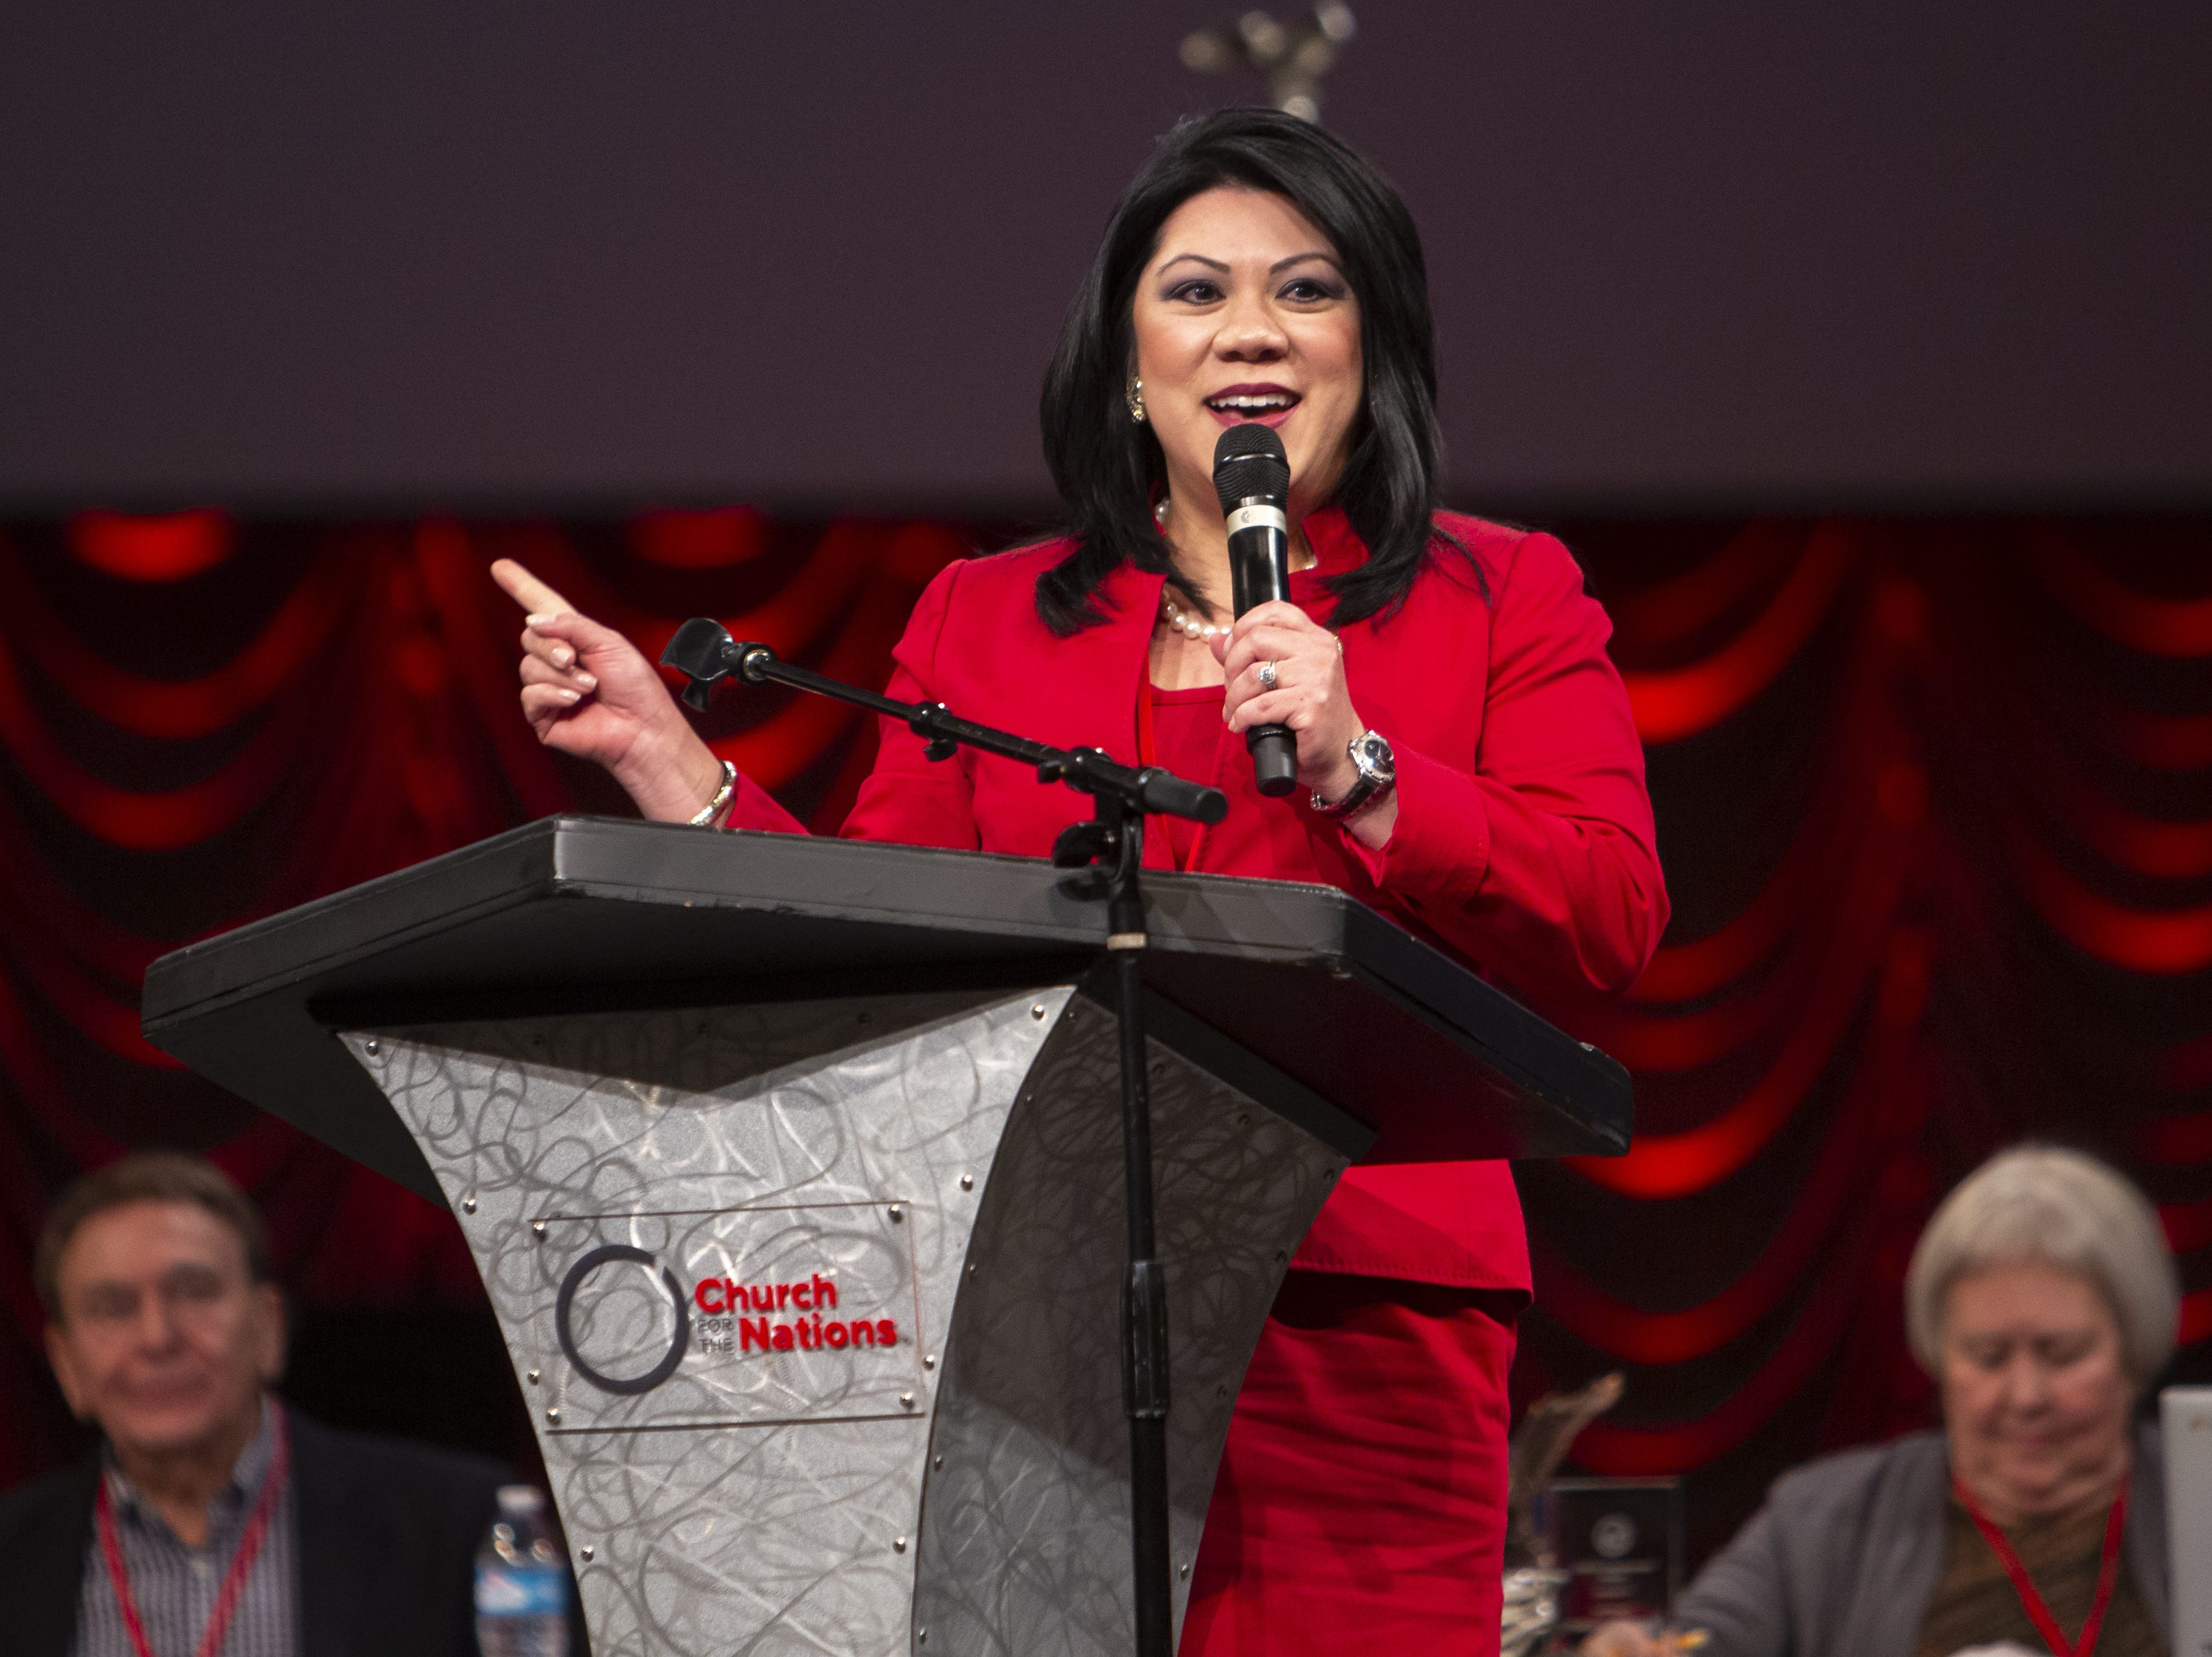 Recently elected Arizona State Treasurer Kimberly Yee speaks during the Statutory Meeting of the State Committee of the Arizona Republican Party at Church for the Nations on Saturday, Jan. 26, 2019.